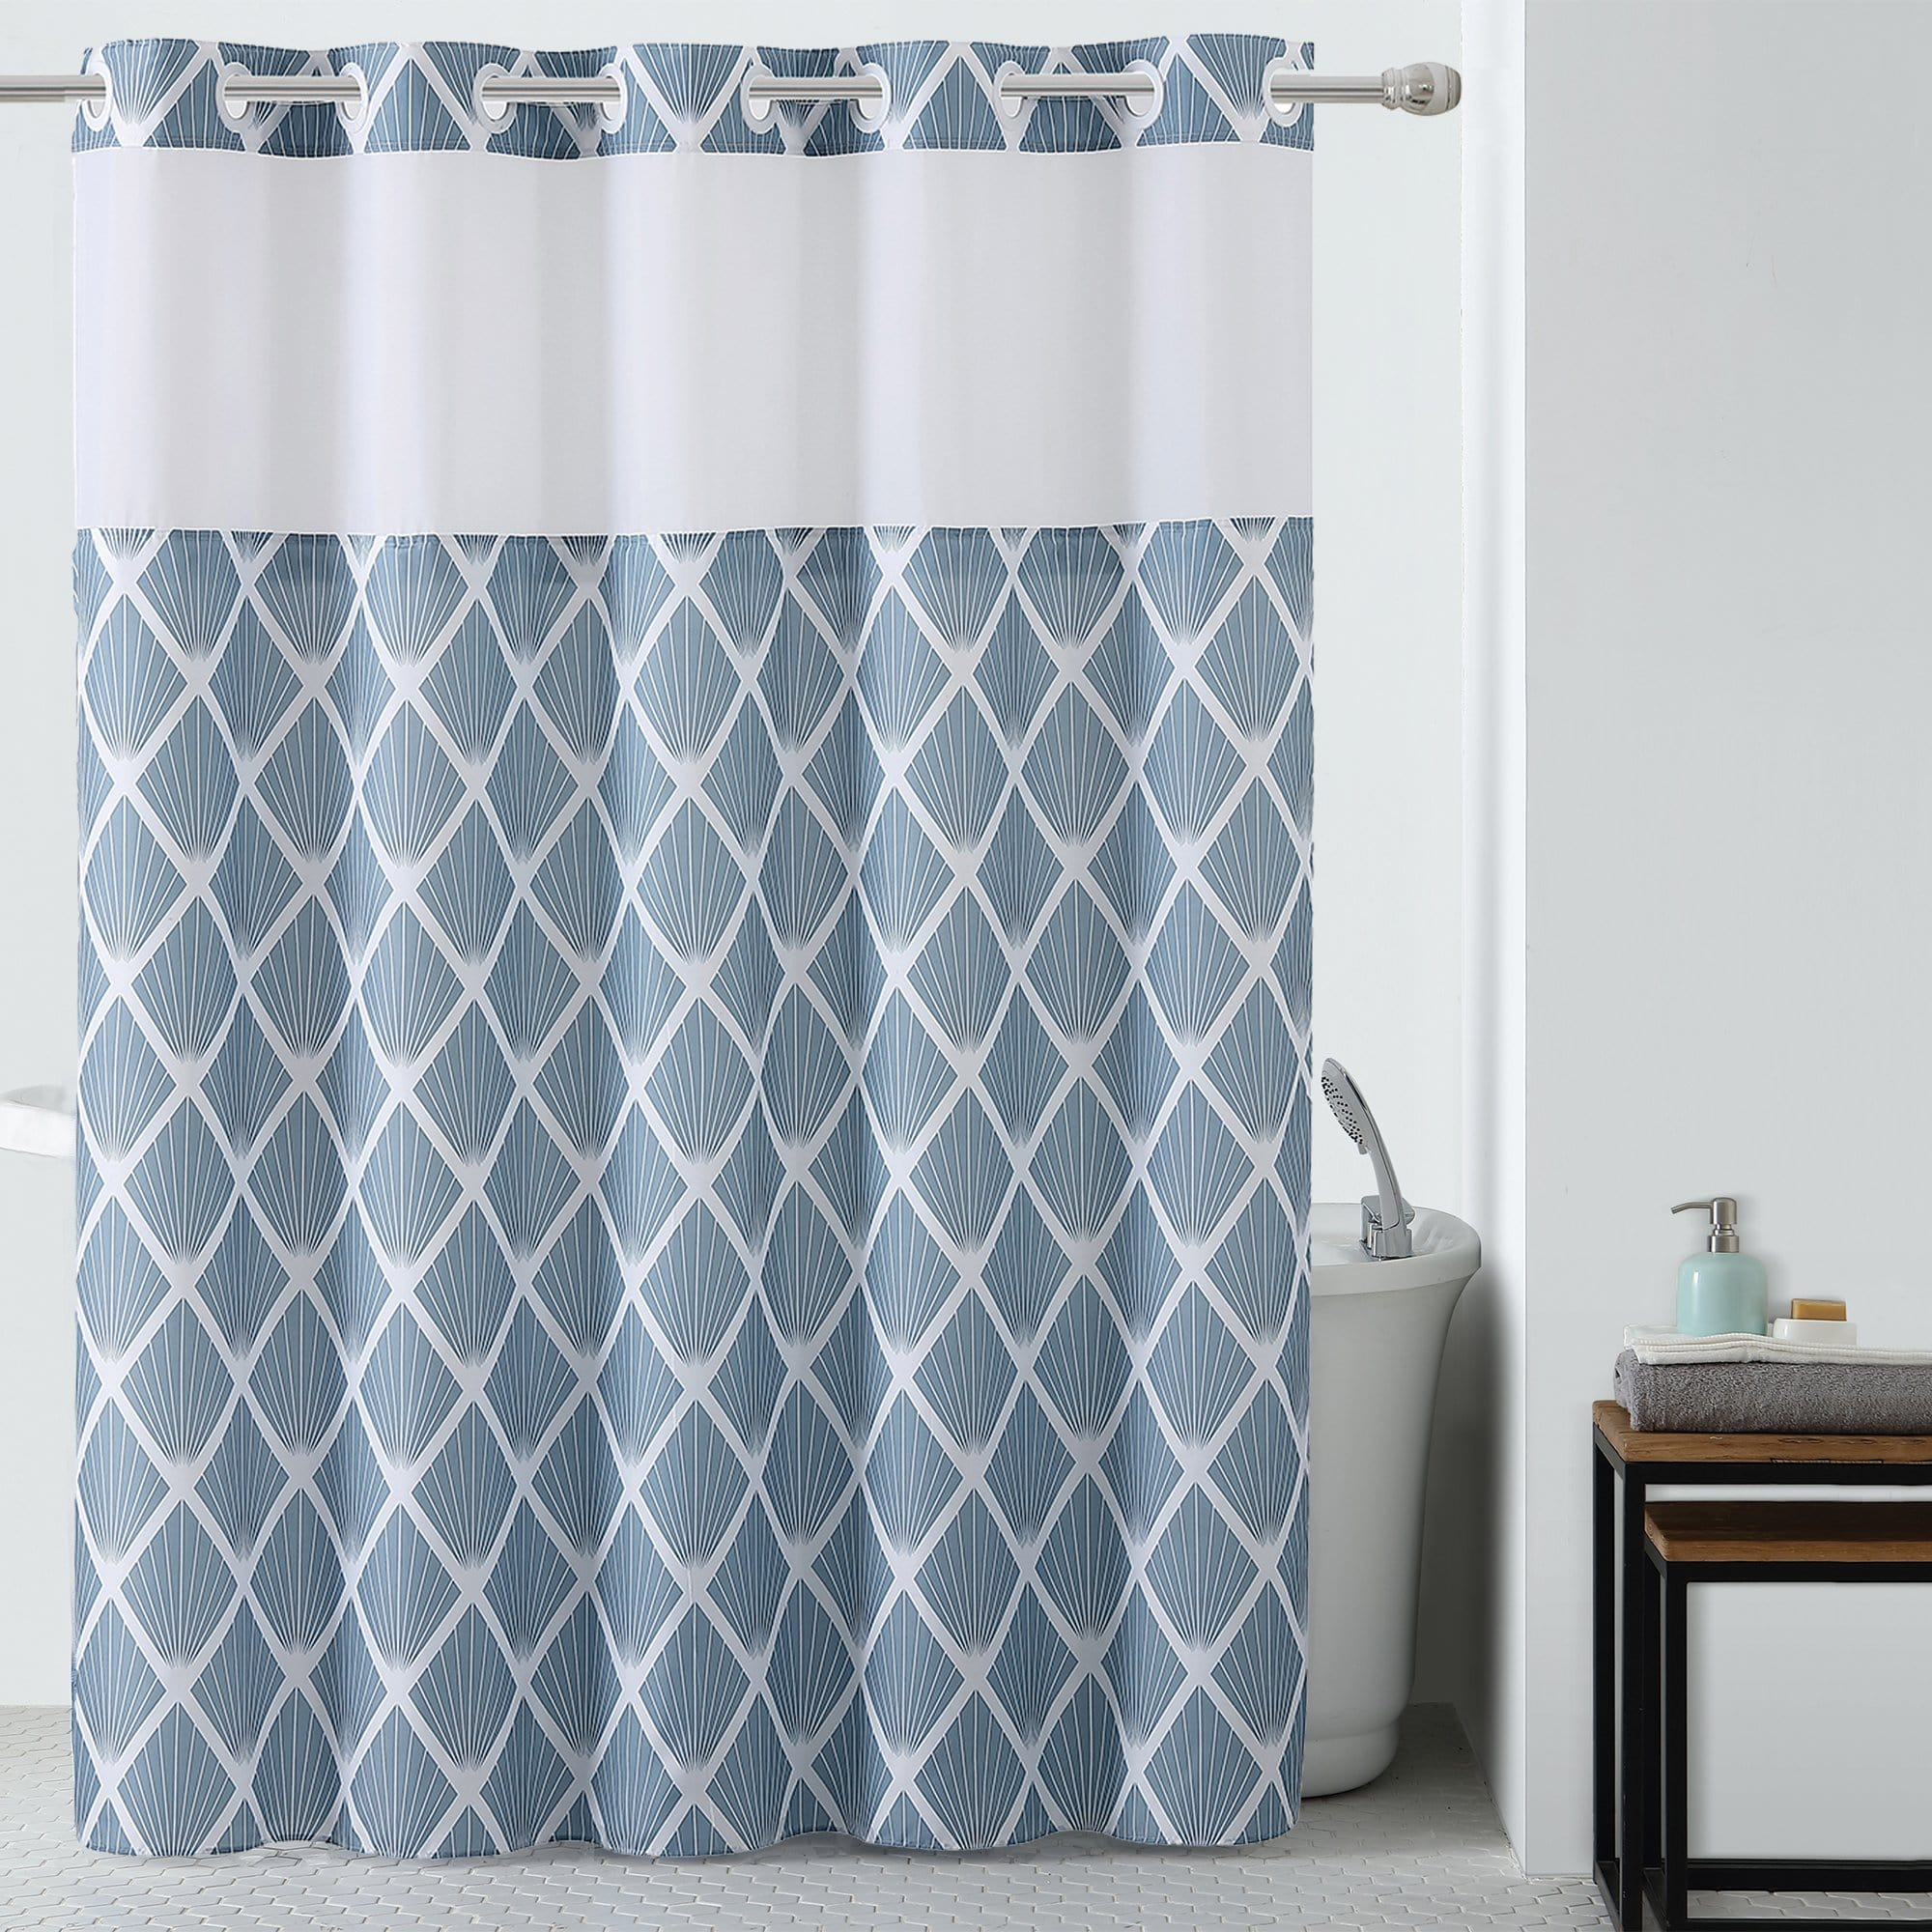 Diamond Hookless® Shower Curtain Includes Snap On/Off Replaceable Liner - Blue